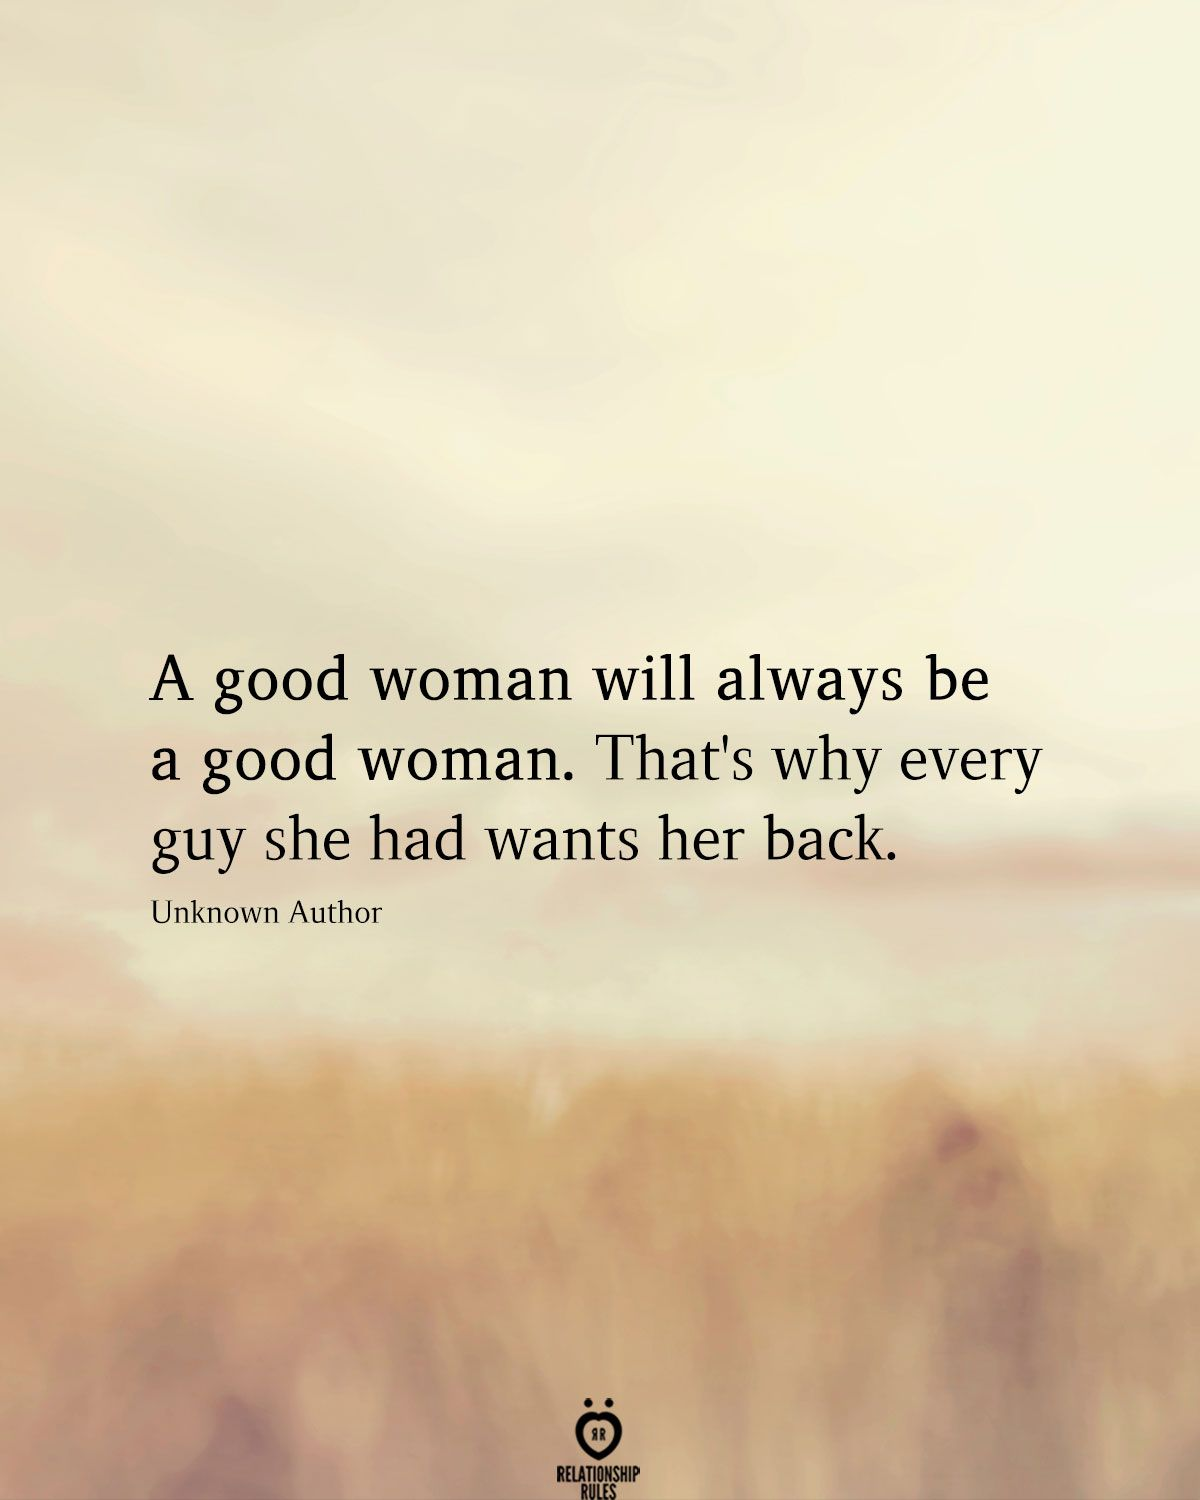 A Good Woman Will Always Be A Good Woman